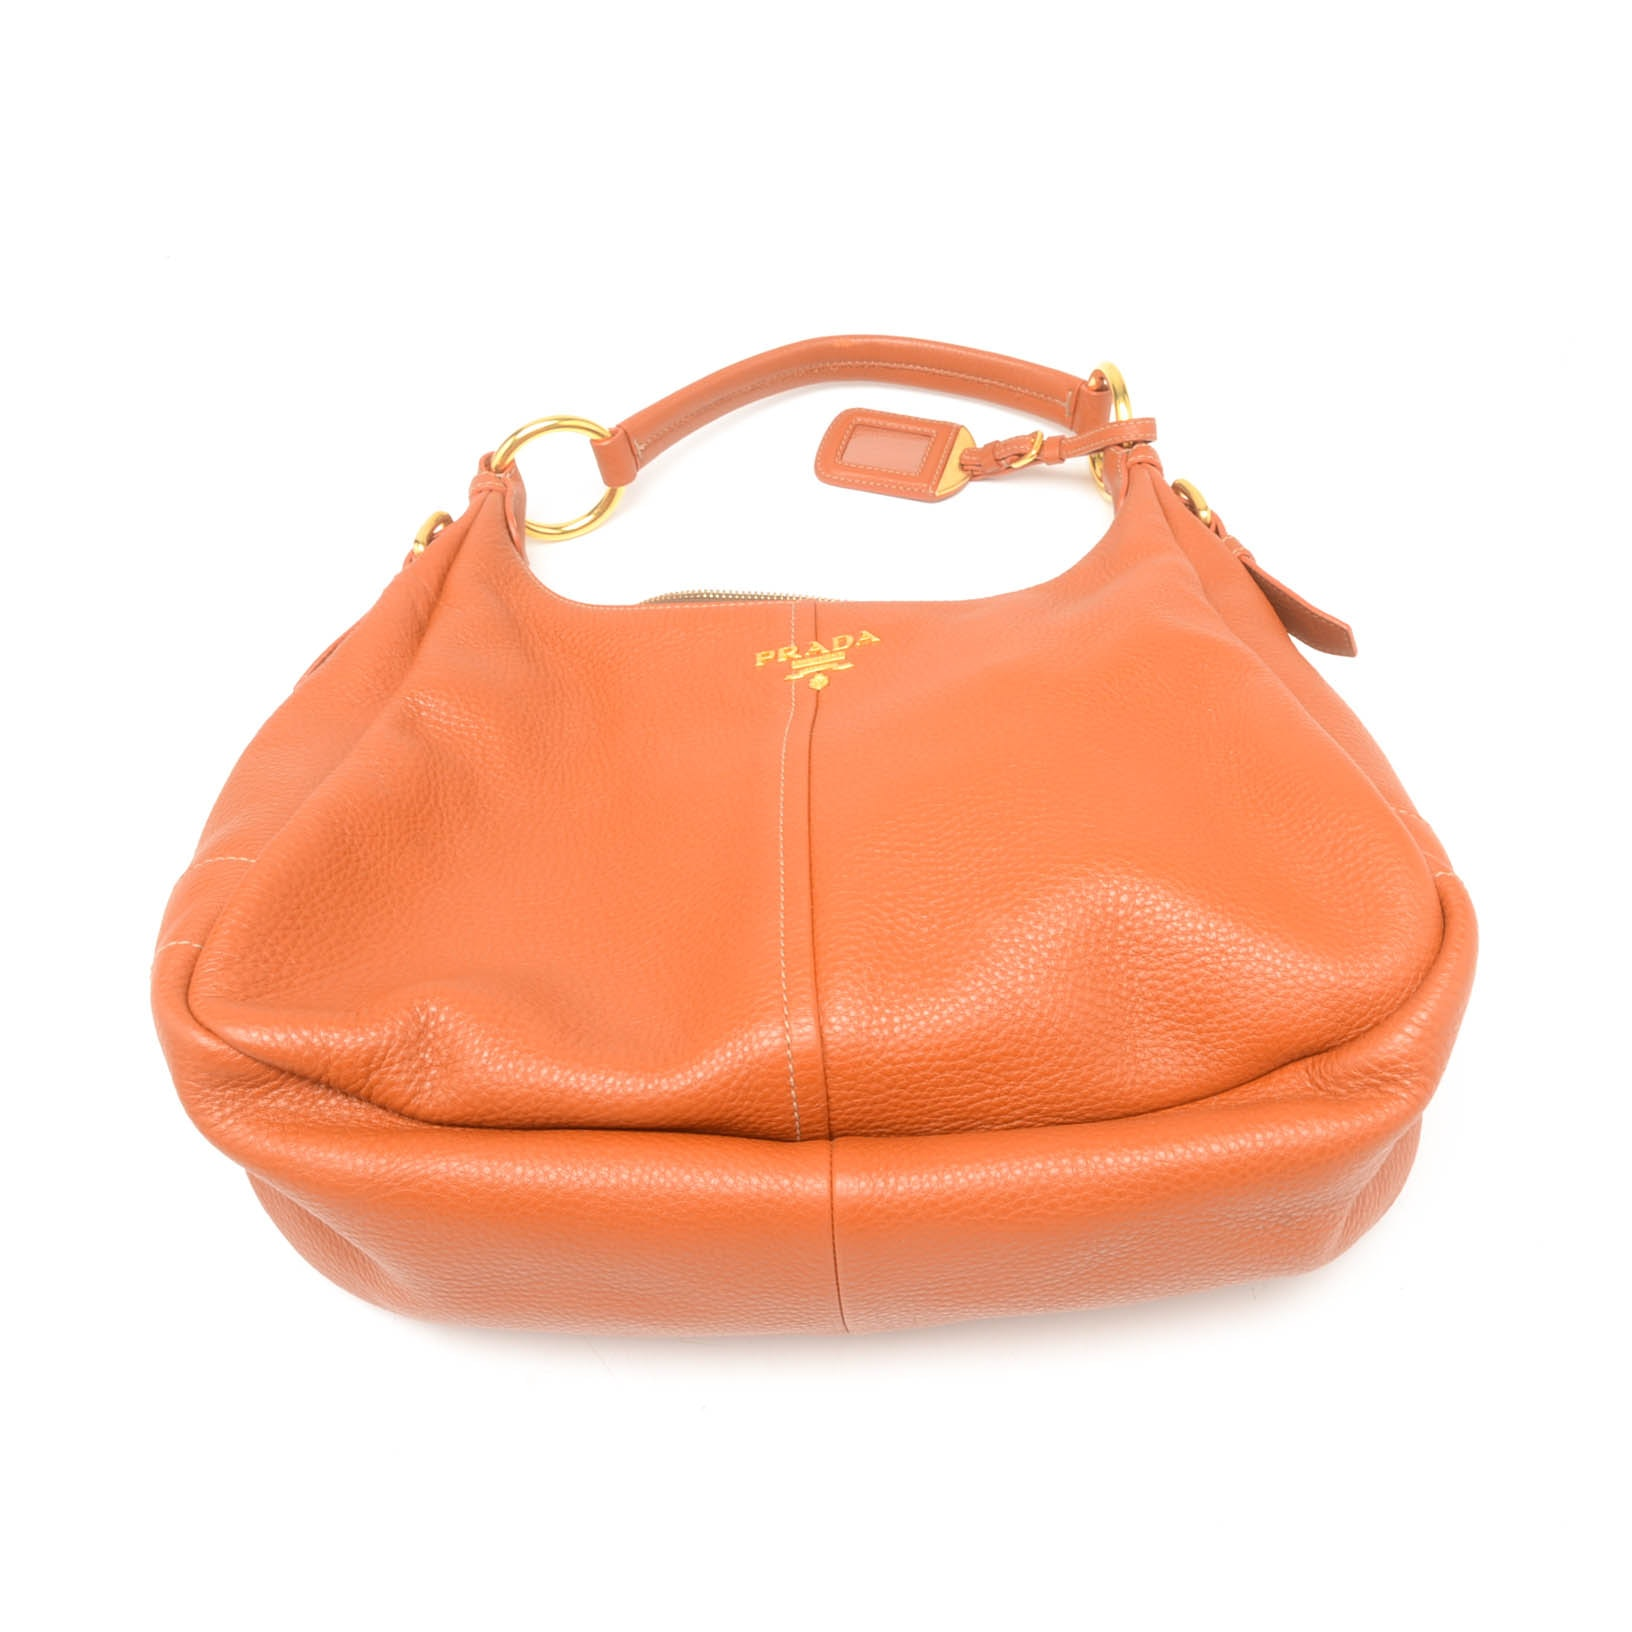 Prada Vitello Daino Hobo Leather Shoulder Bag